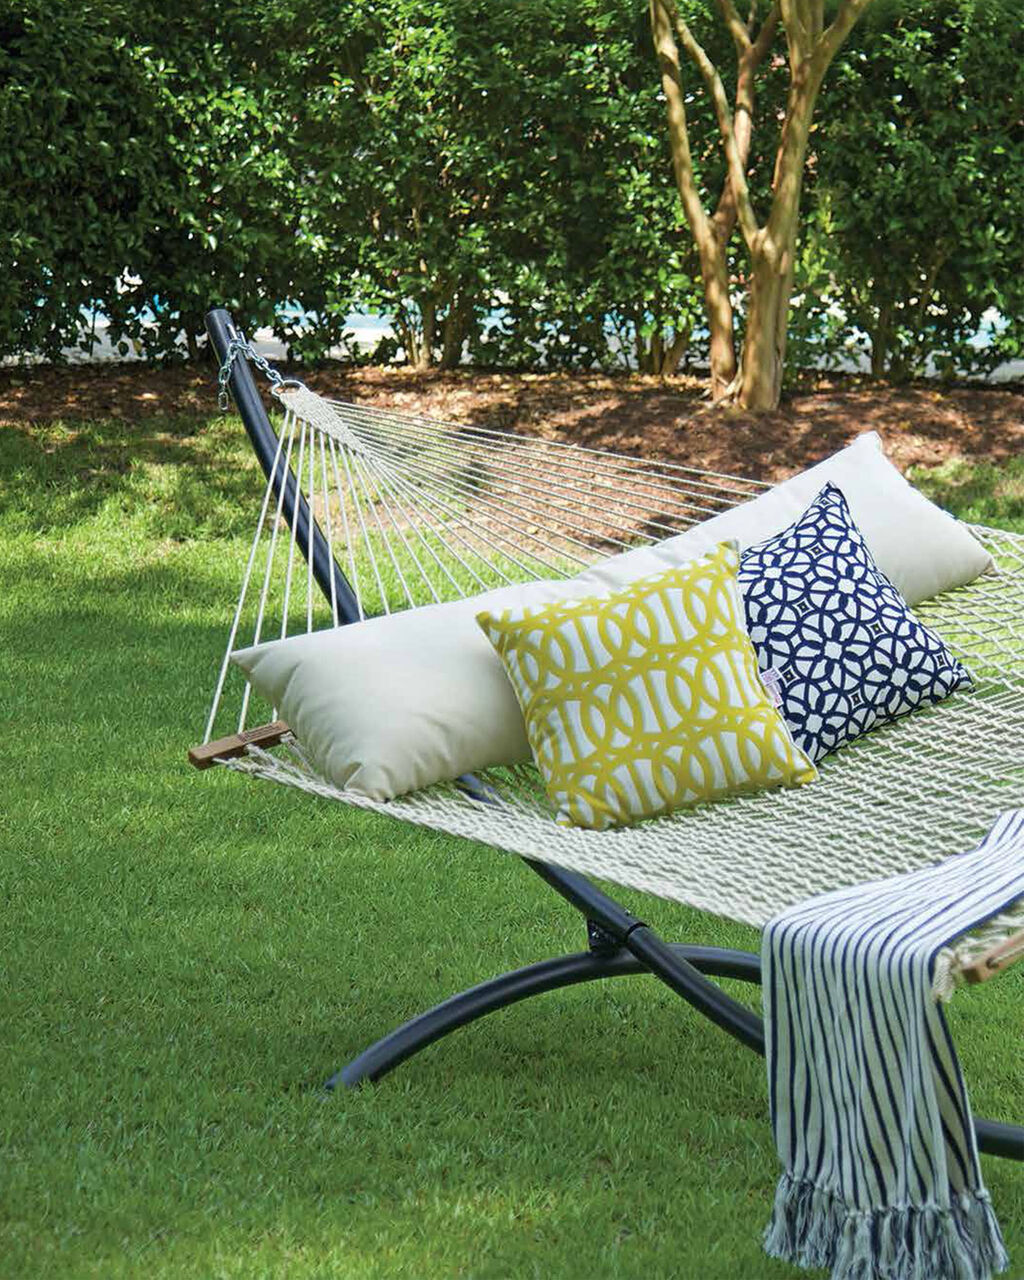 Woven hammock in the lawn under shade from surrounding trees